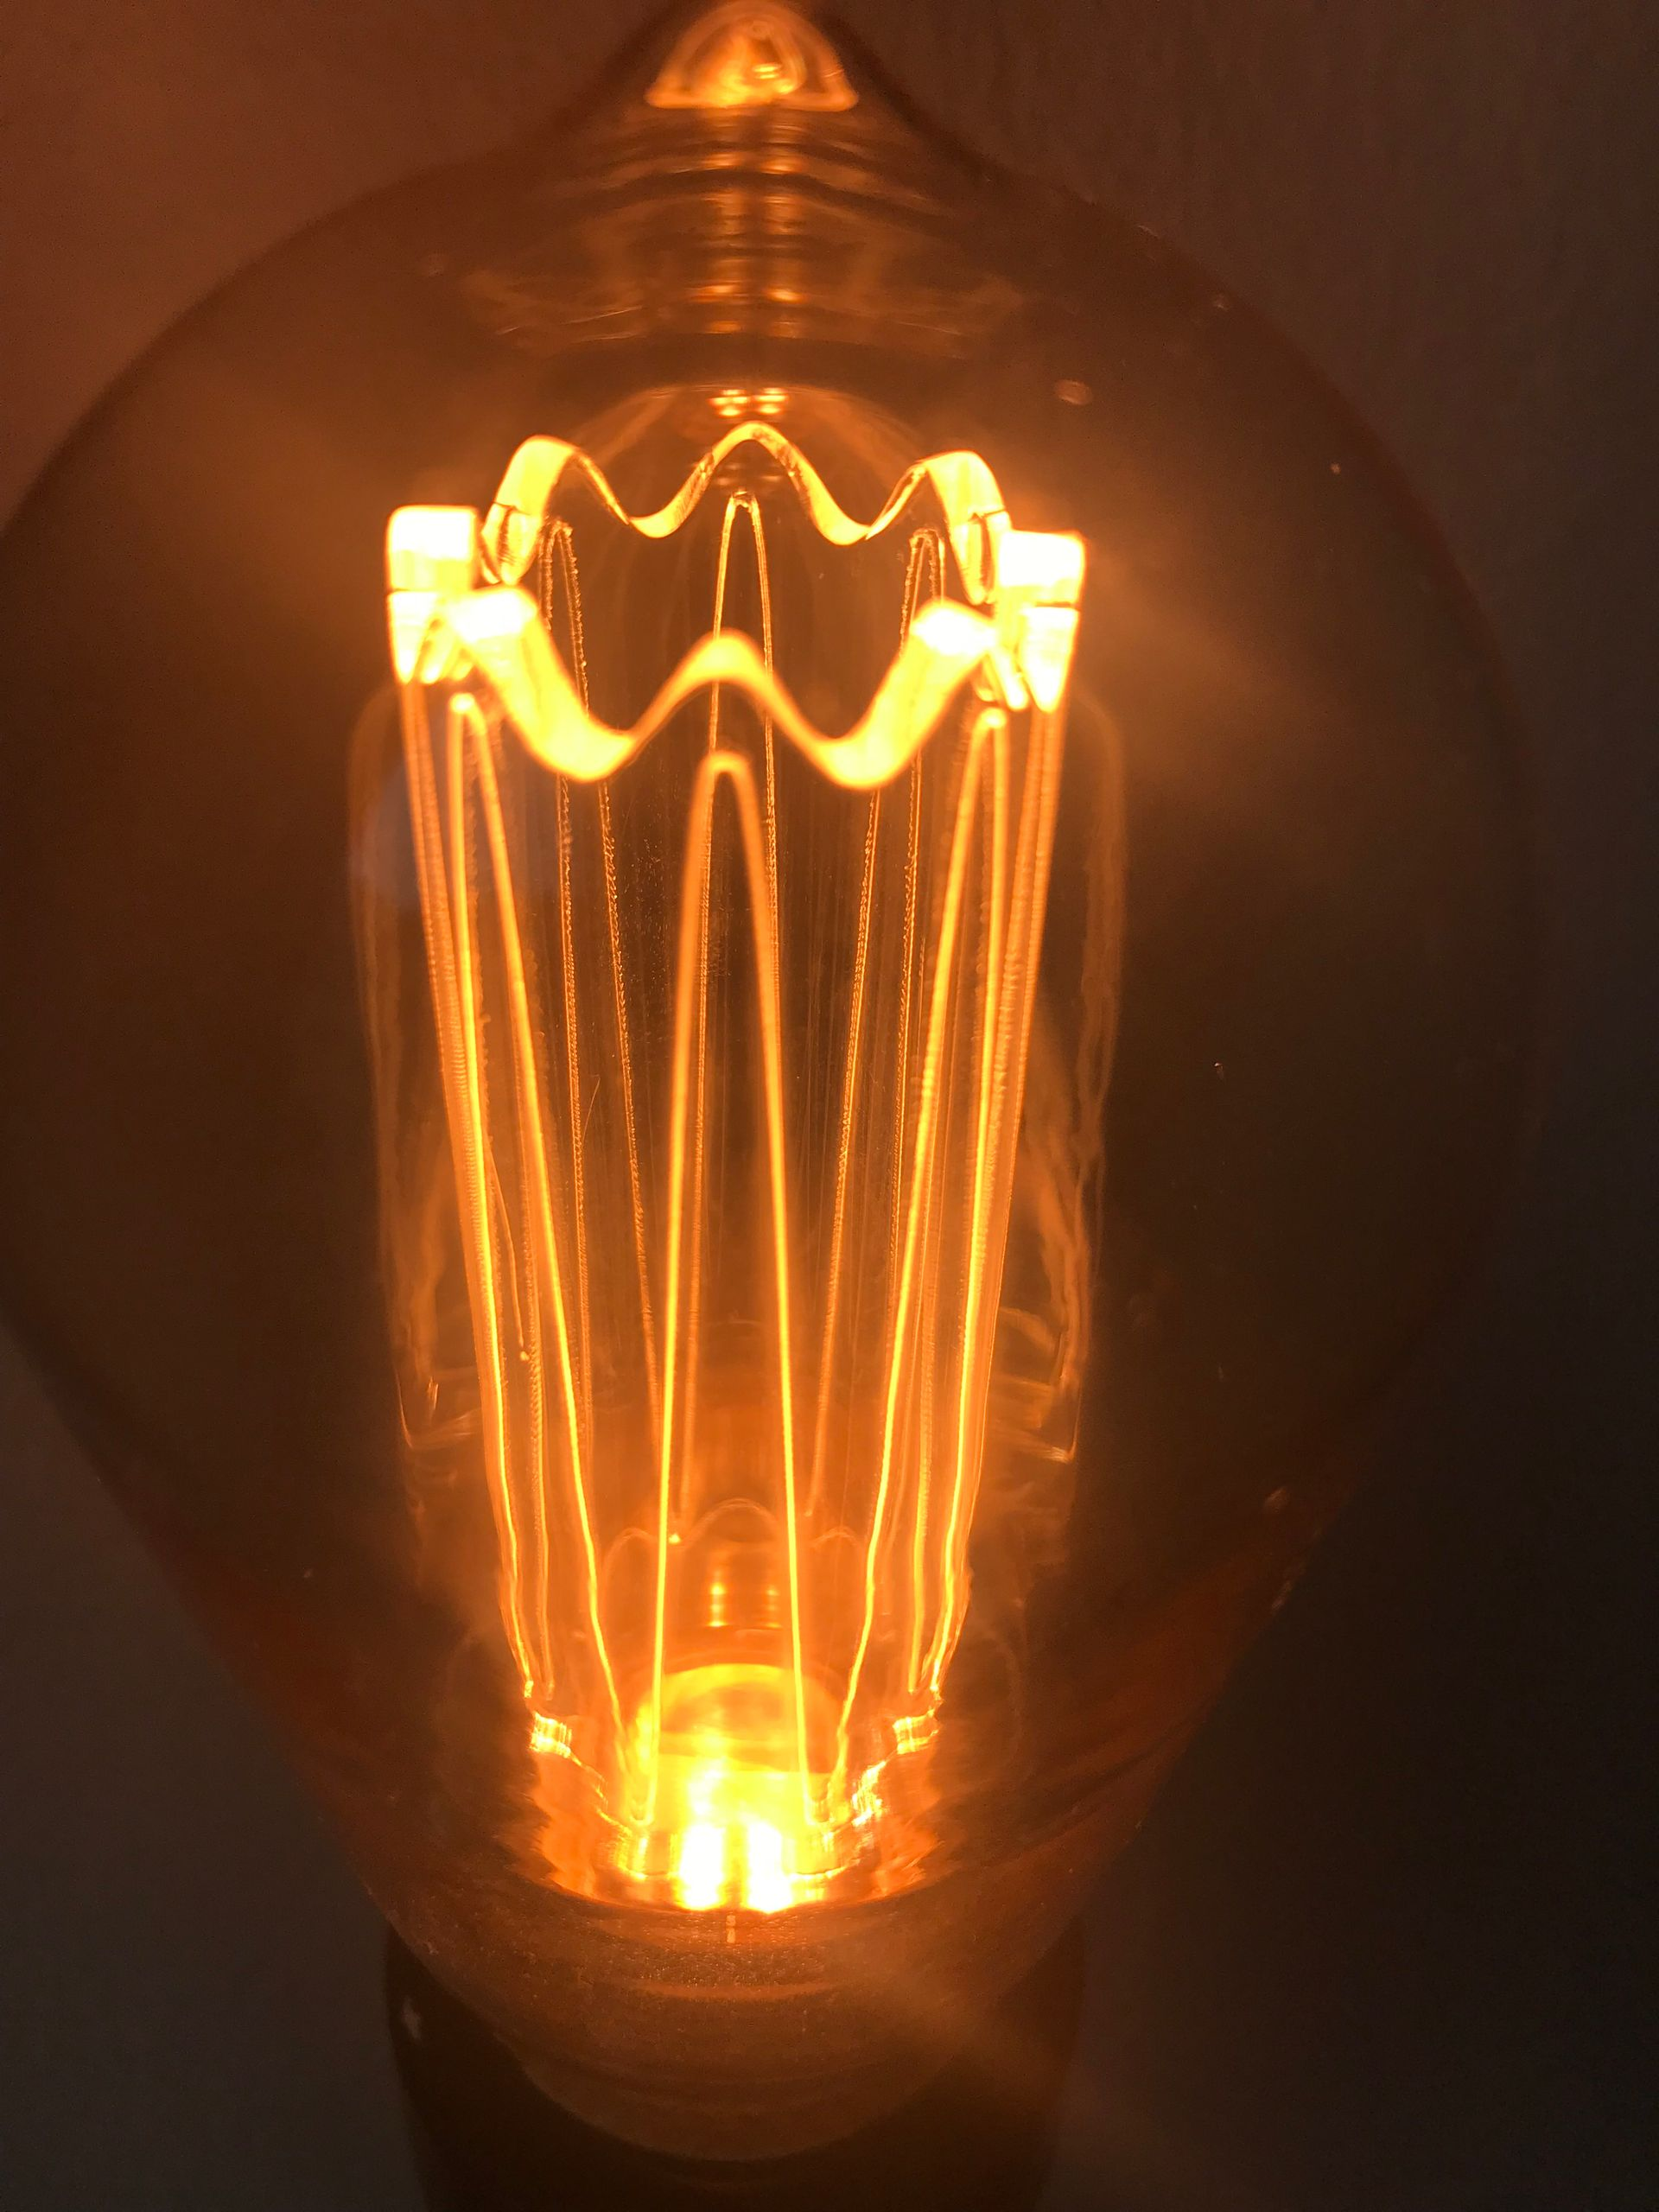 vintage design led lampe zur stimmungsbeleuchtung e27 st64. Black Bedroom Furniture Sets. Home Design Ideas